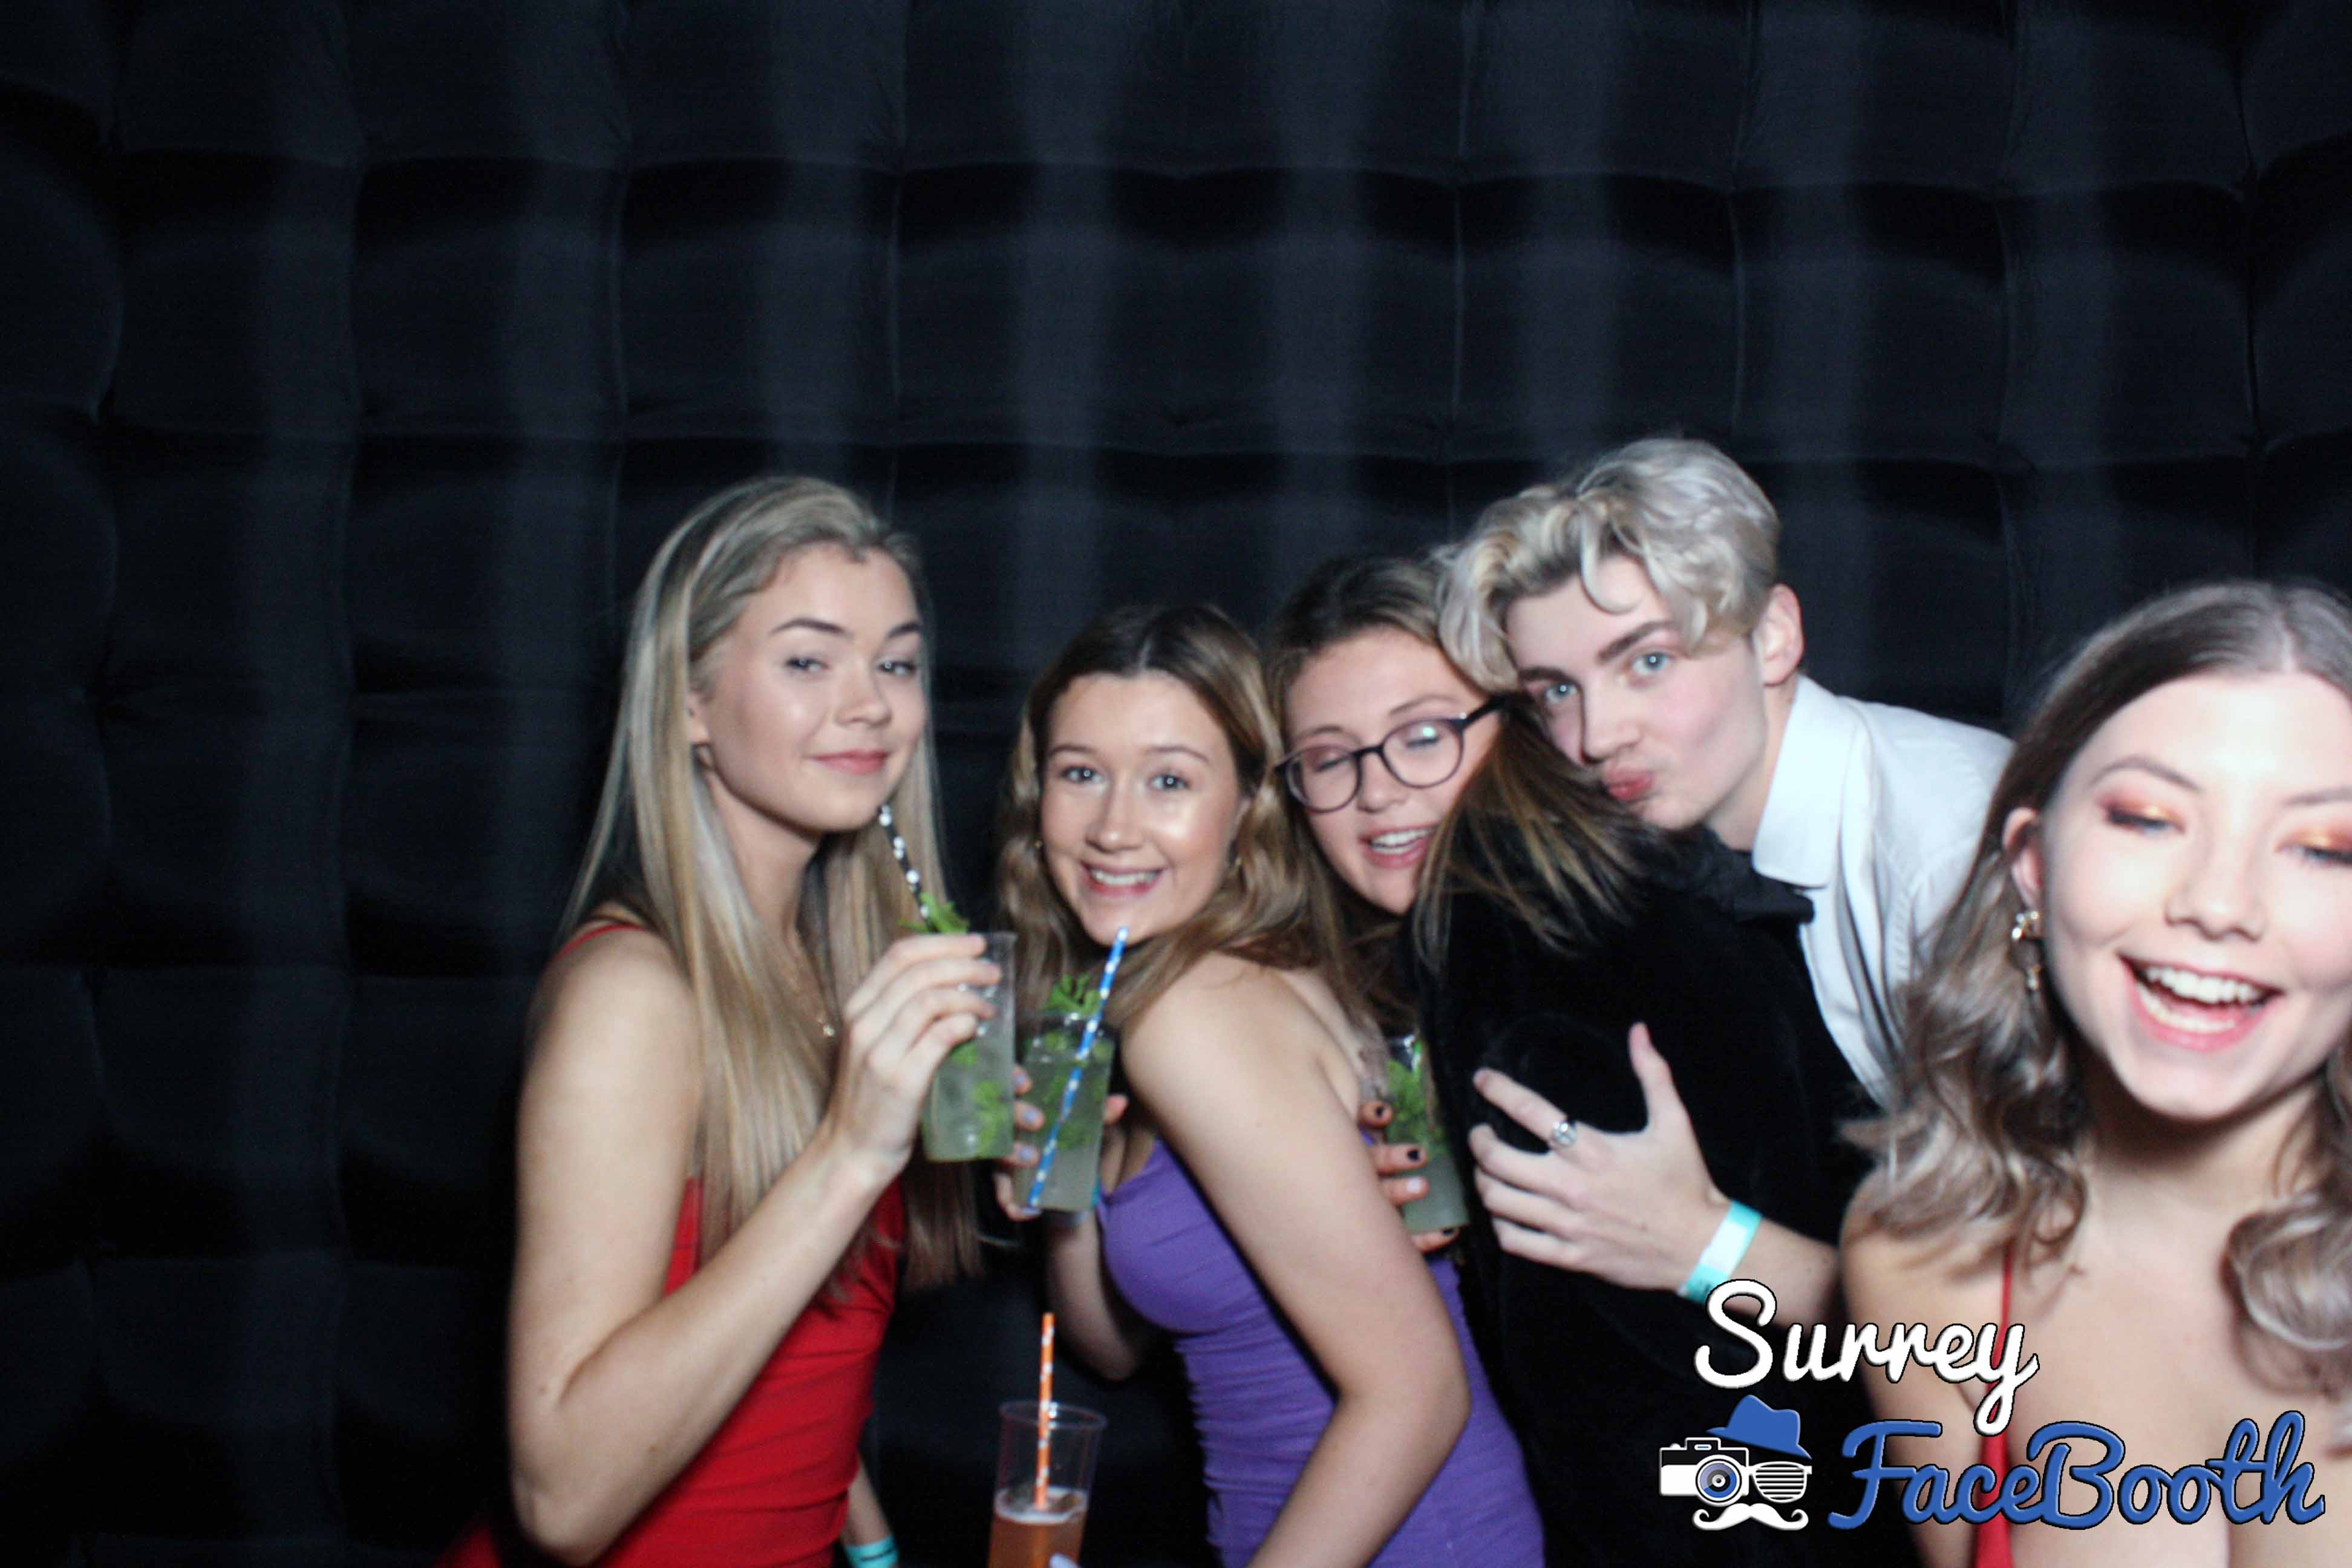 Lucy's 18th Birthday | View more photos from the event at galleries.surreyfacebooth.co.uk/u/Surrey-FaceBooth/Lucys-18th-Birthday